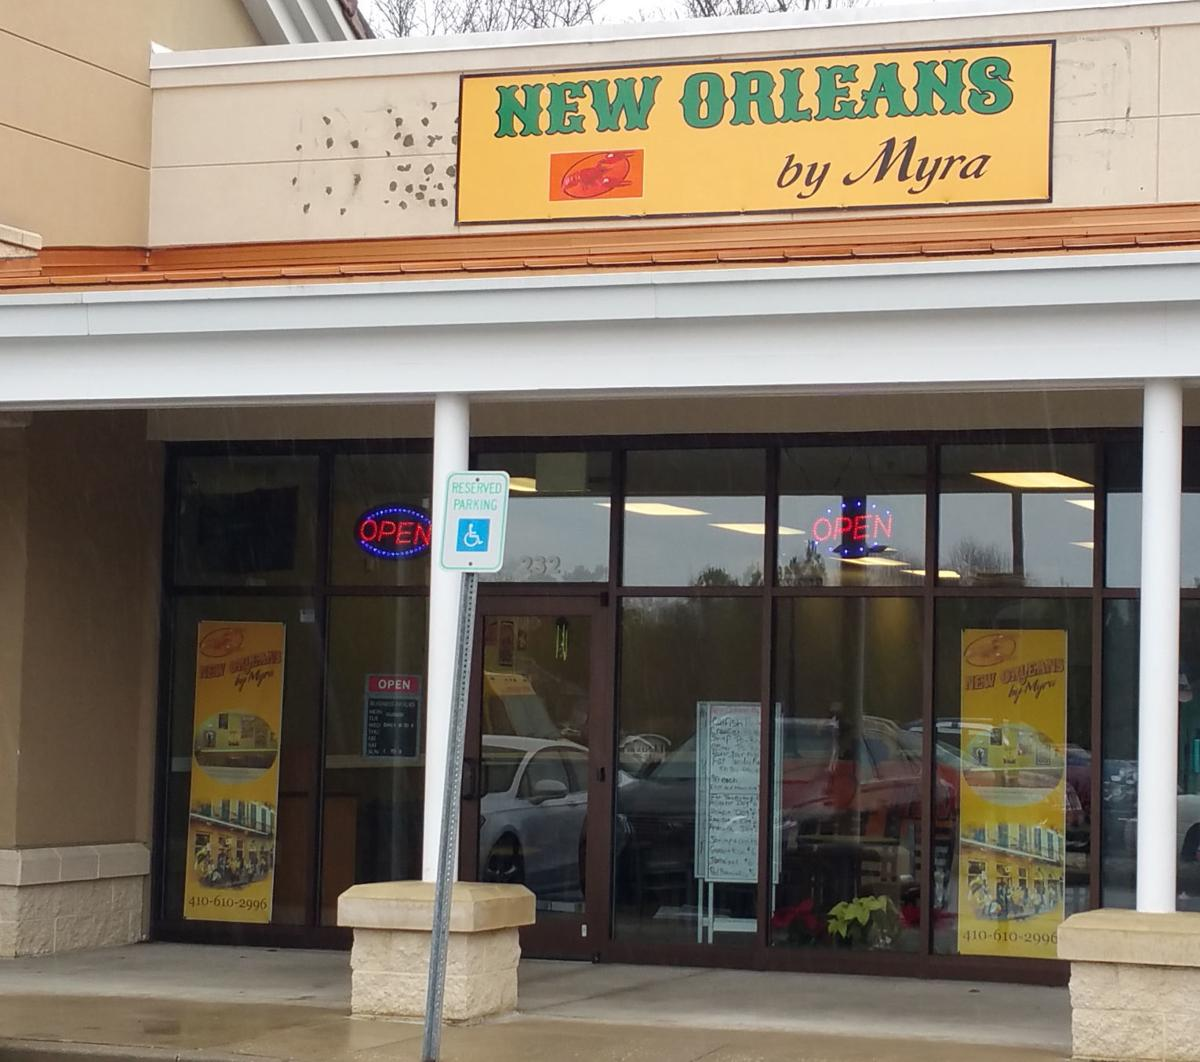 A taste of new orleans comes to southern maryland for Authentic new orleans cuisine